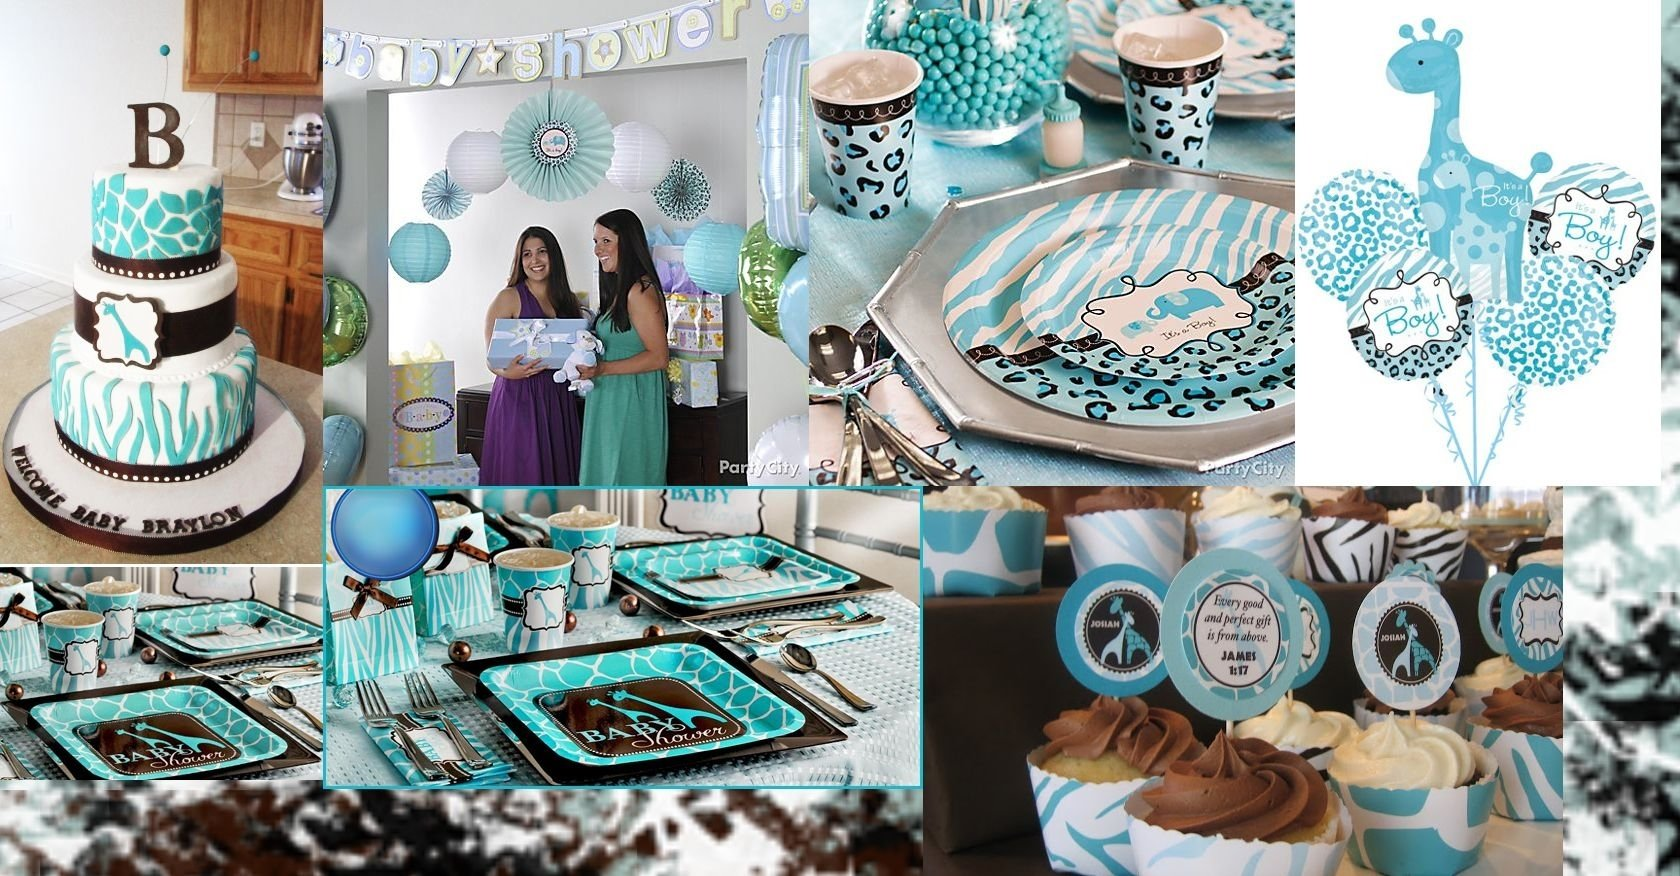 10 Fabulous Blue And Brown Baby Shower Ideas blue safari baby shower baby shower kids party pinterest 1 2020